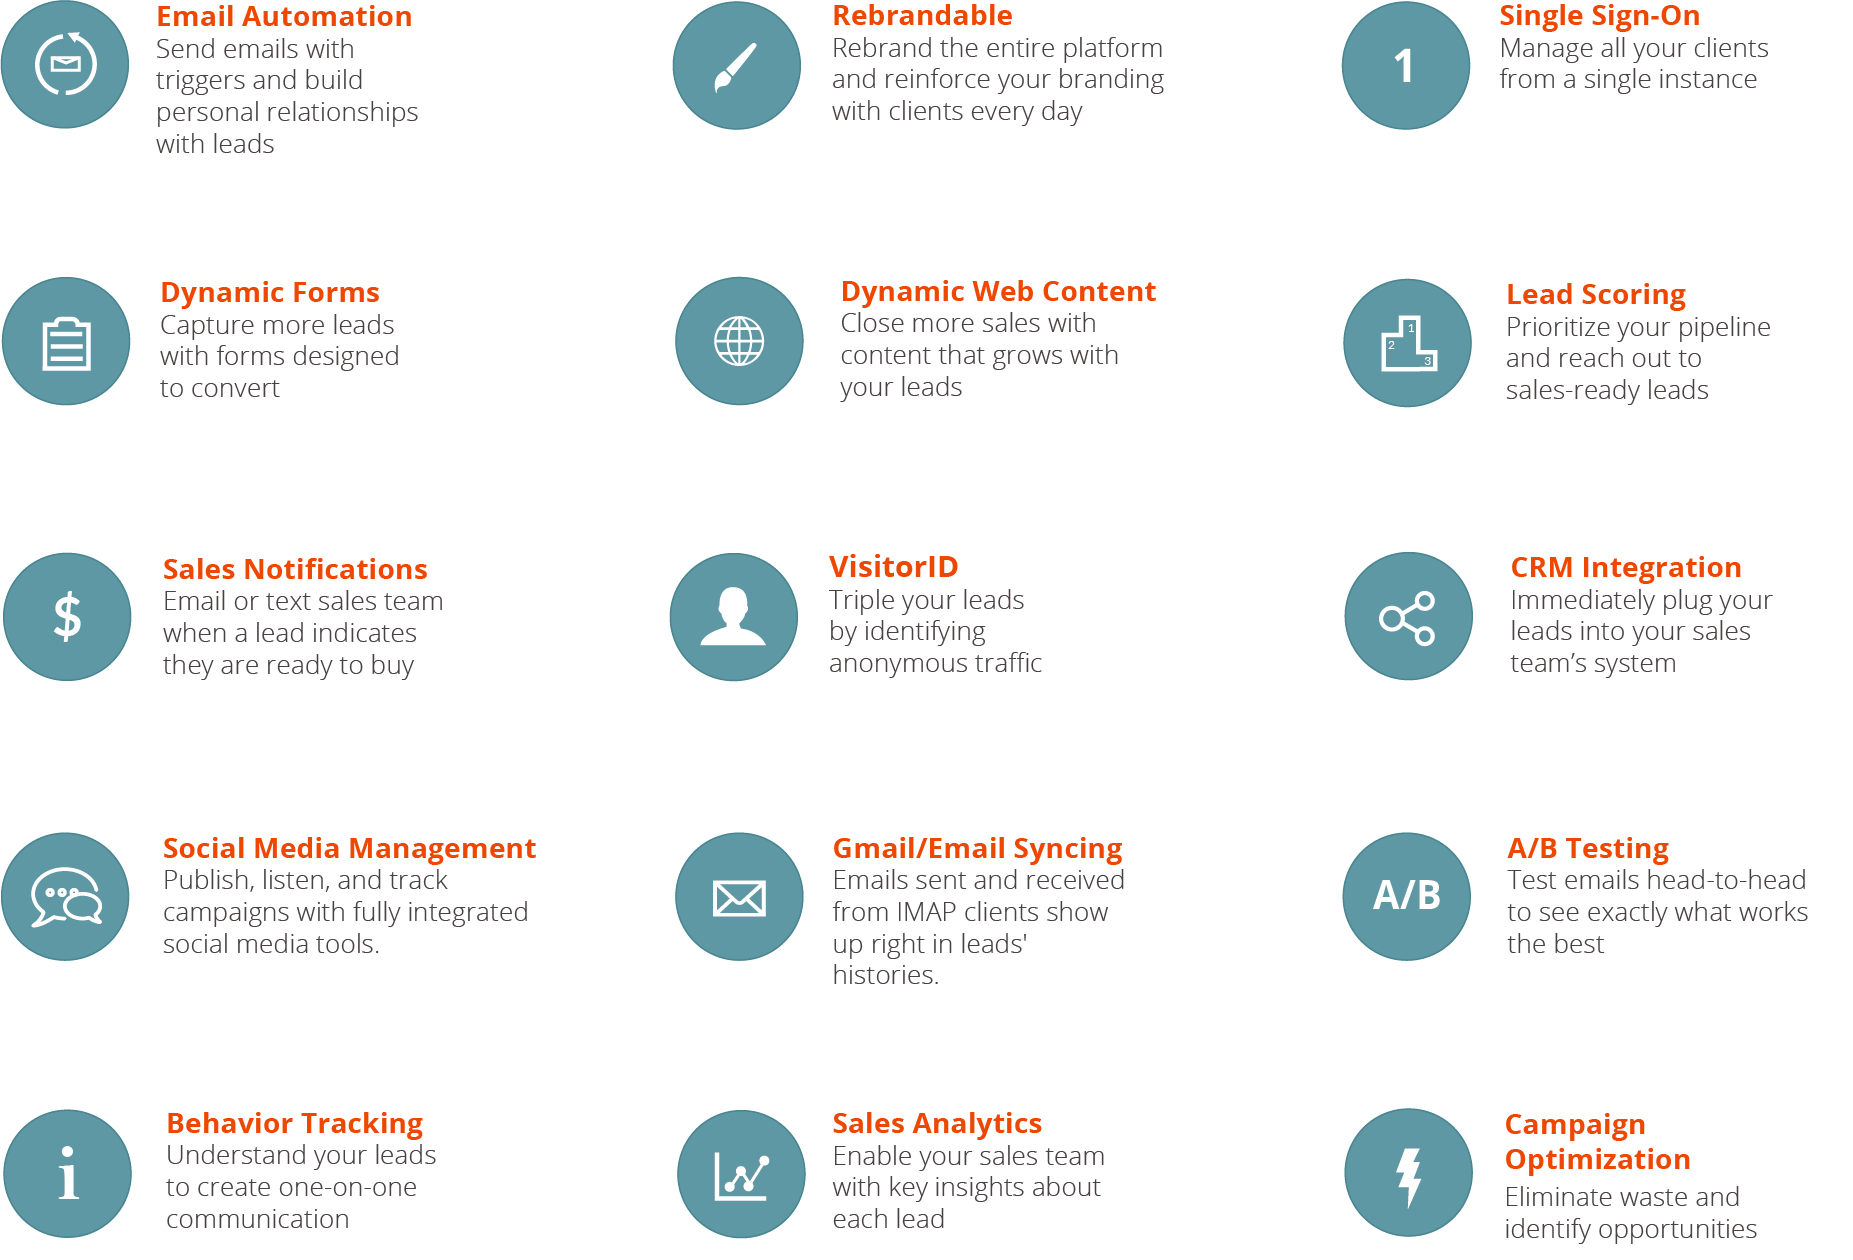 Marketing Automation Features and Tools